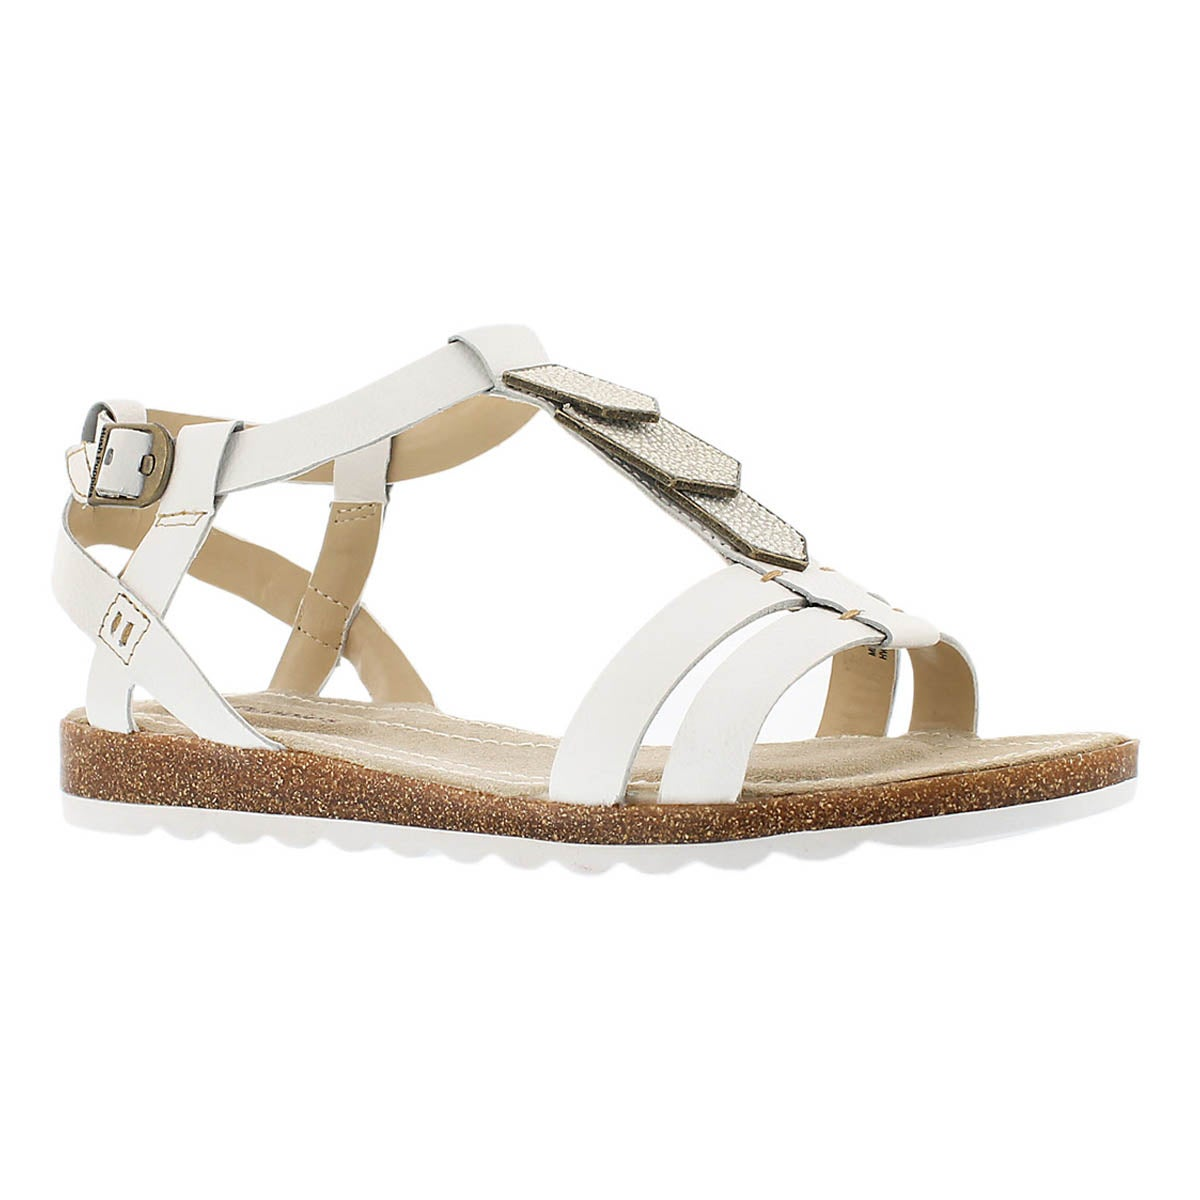 Women's BRETTA JADE white gladiator sandals